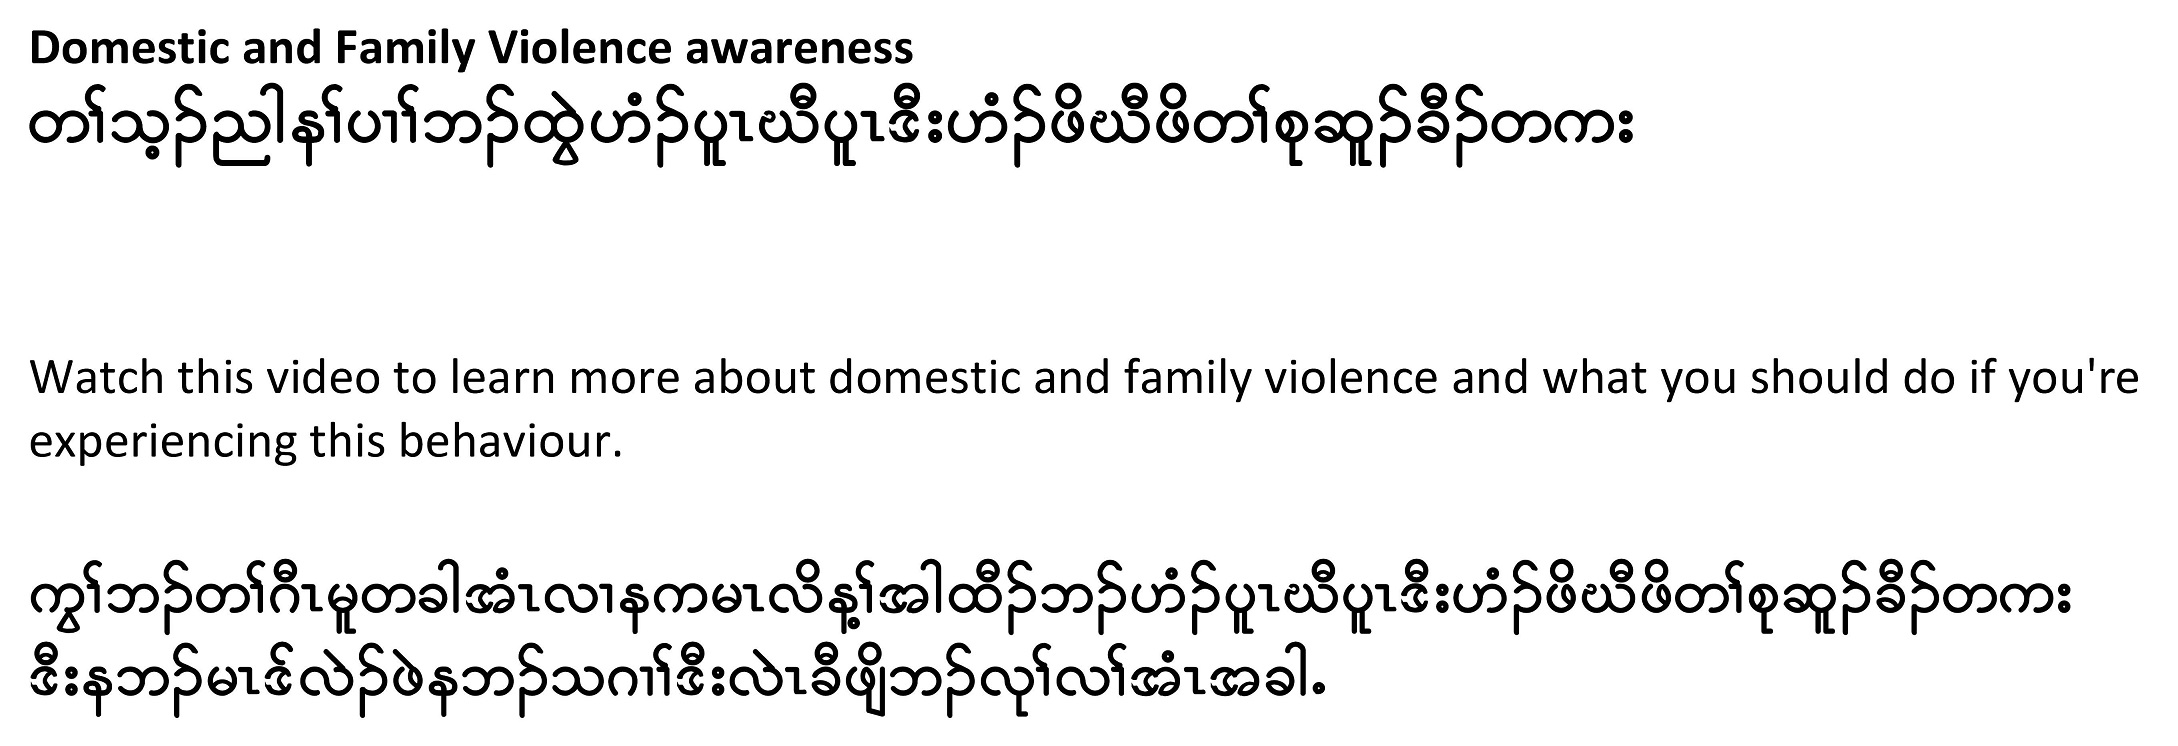 Family violence translation